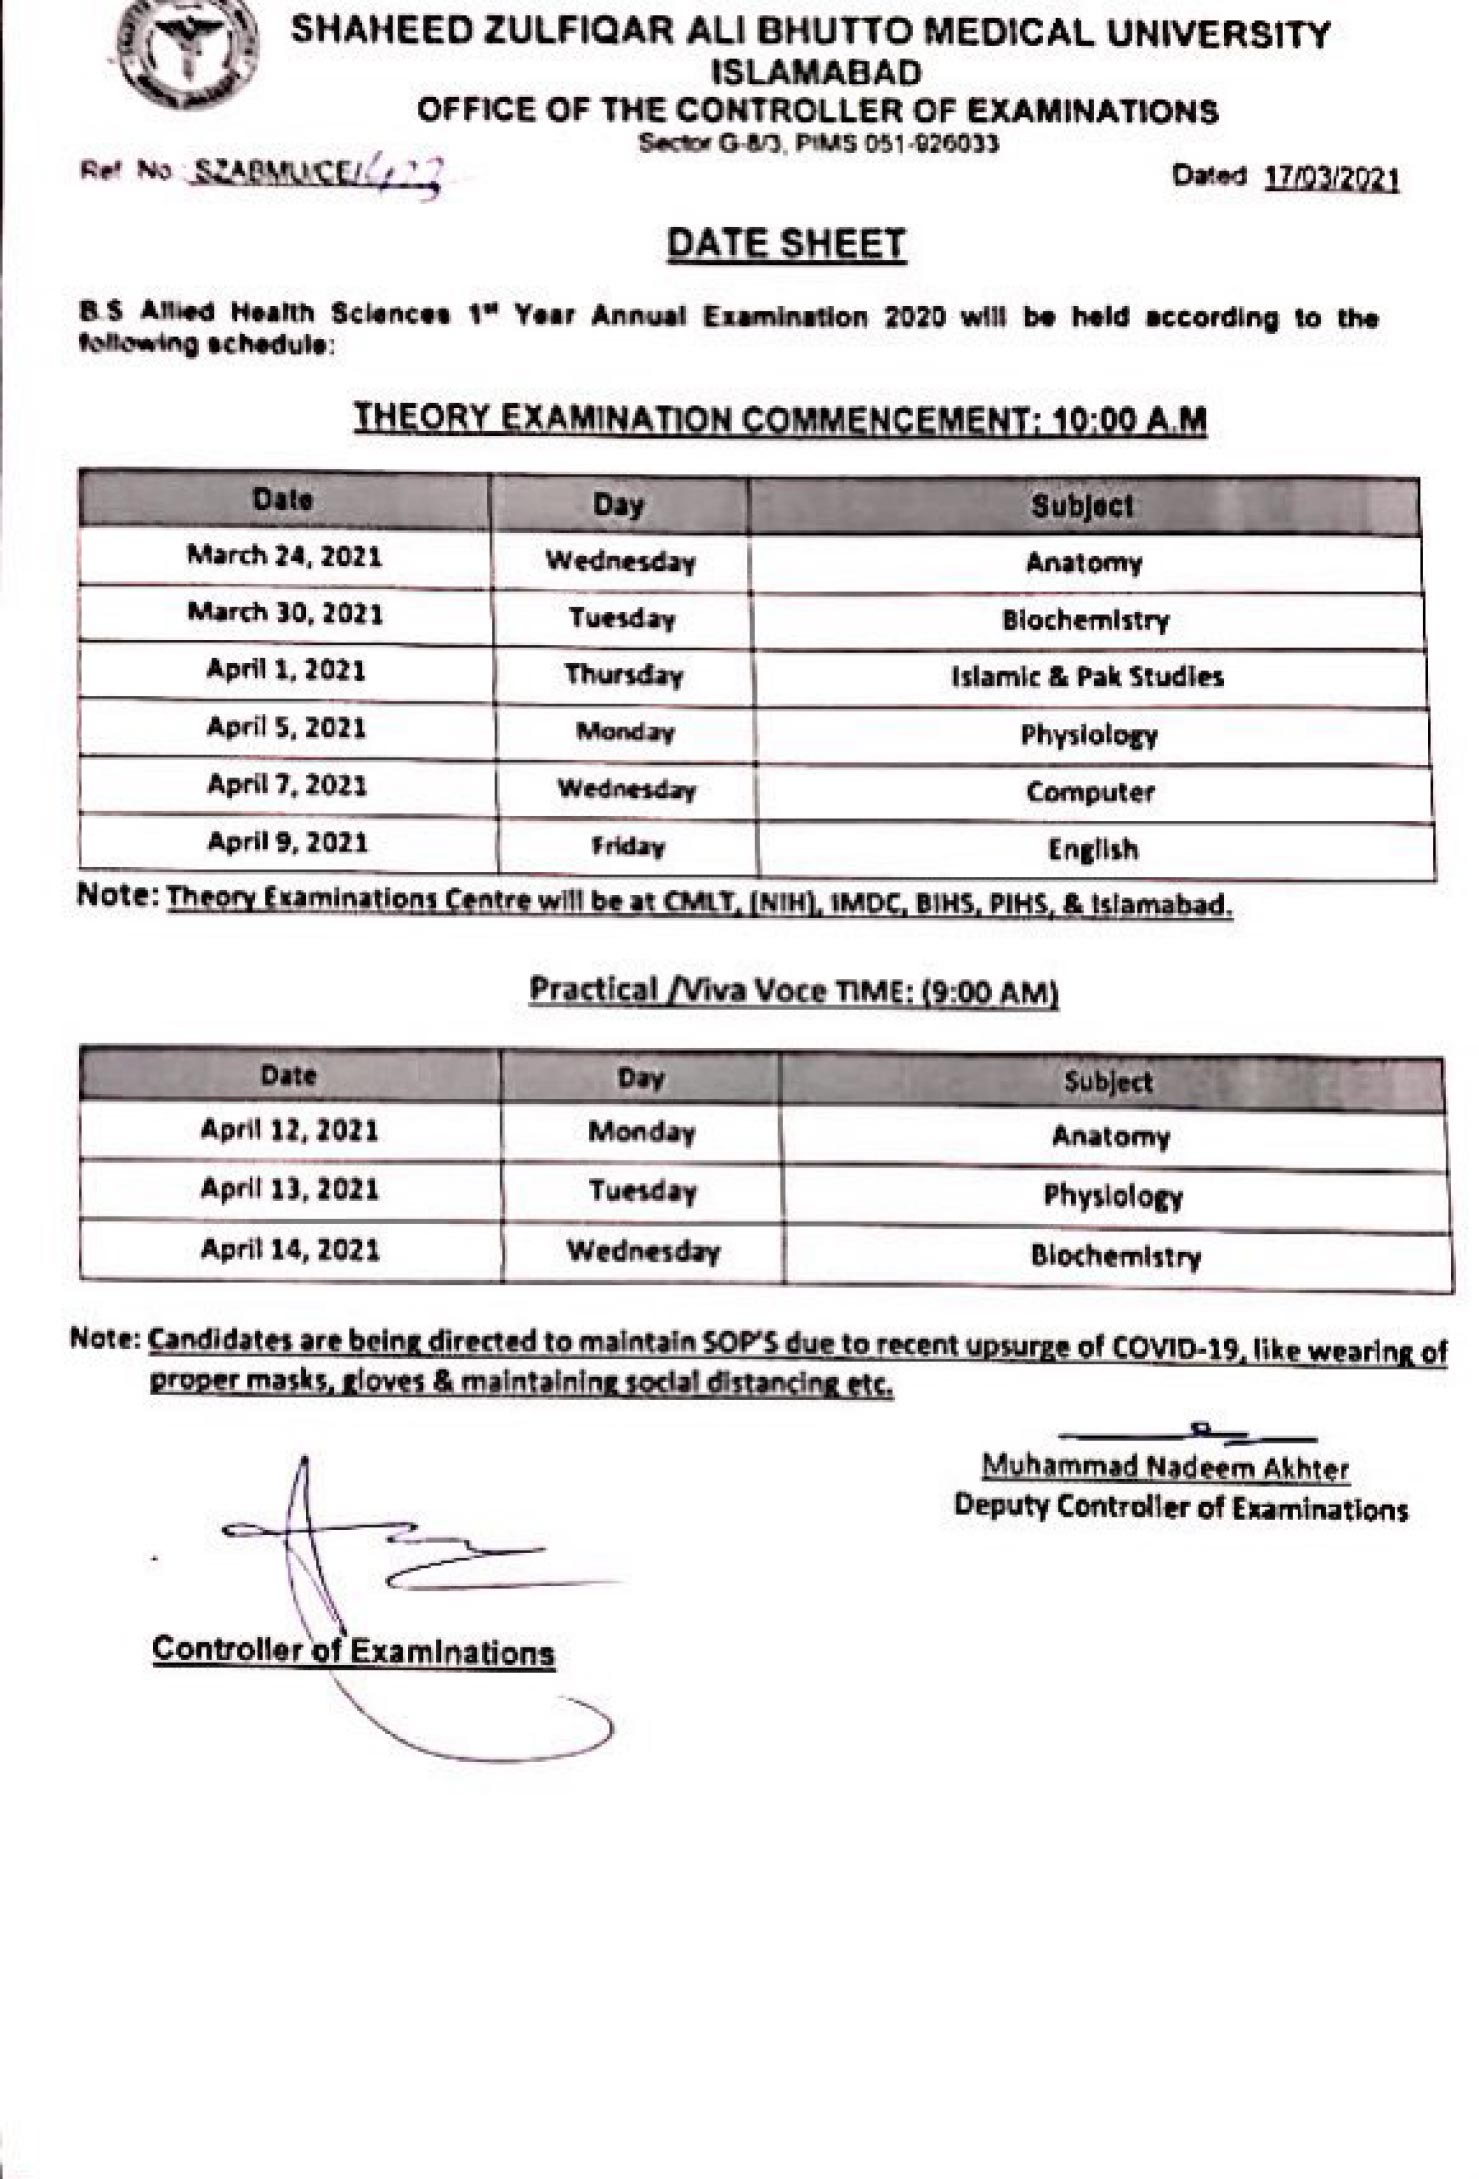 BS Allied Health Sciences 1st Year Annual Examination 2020